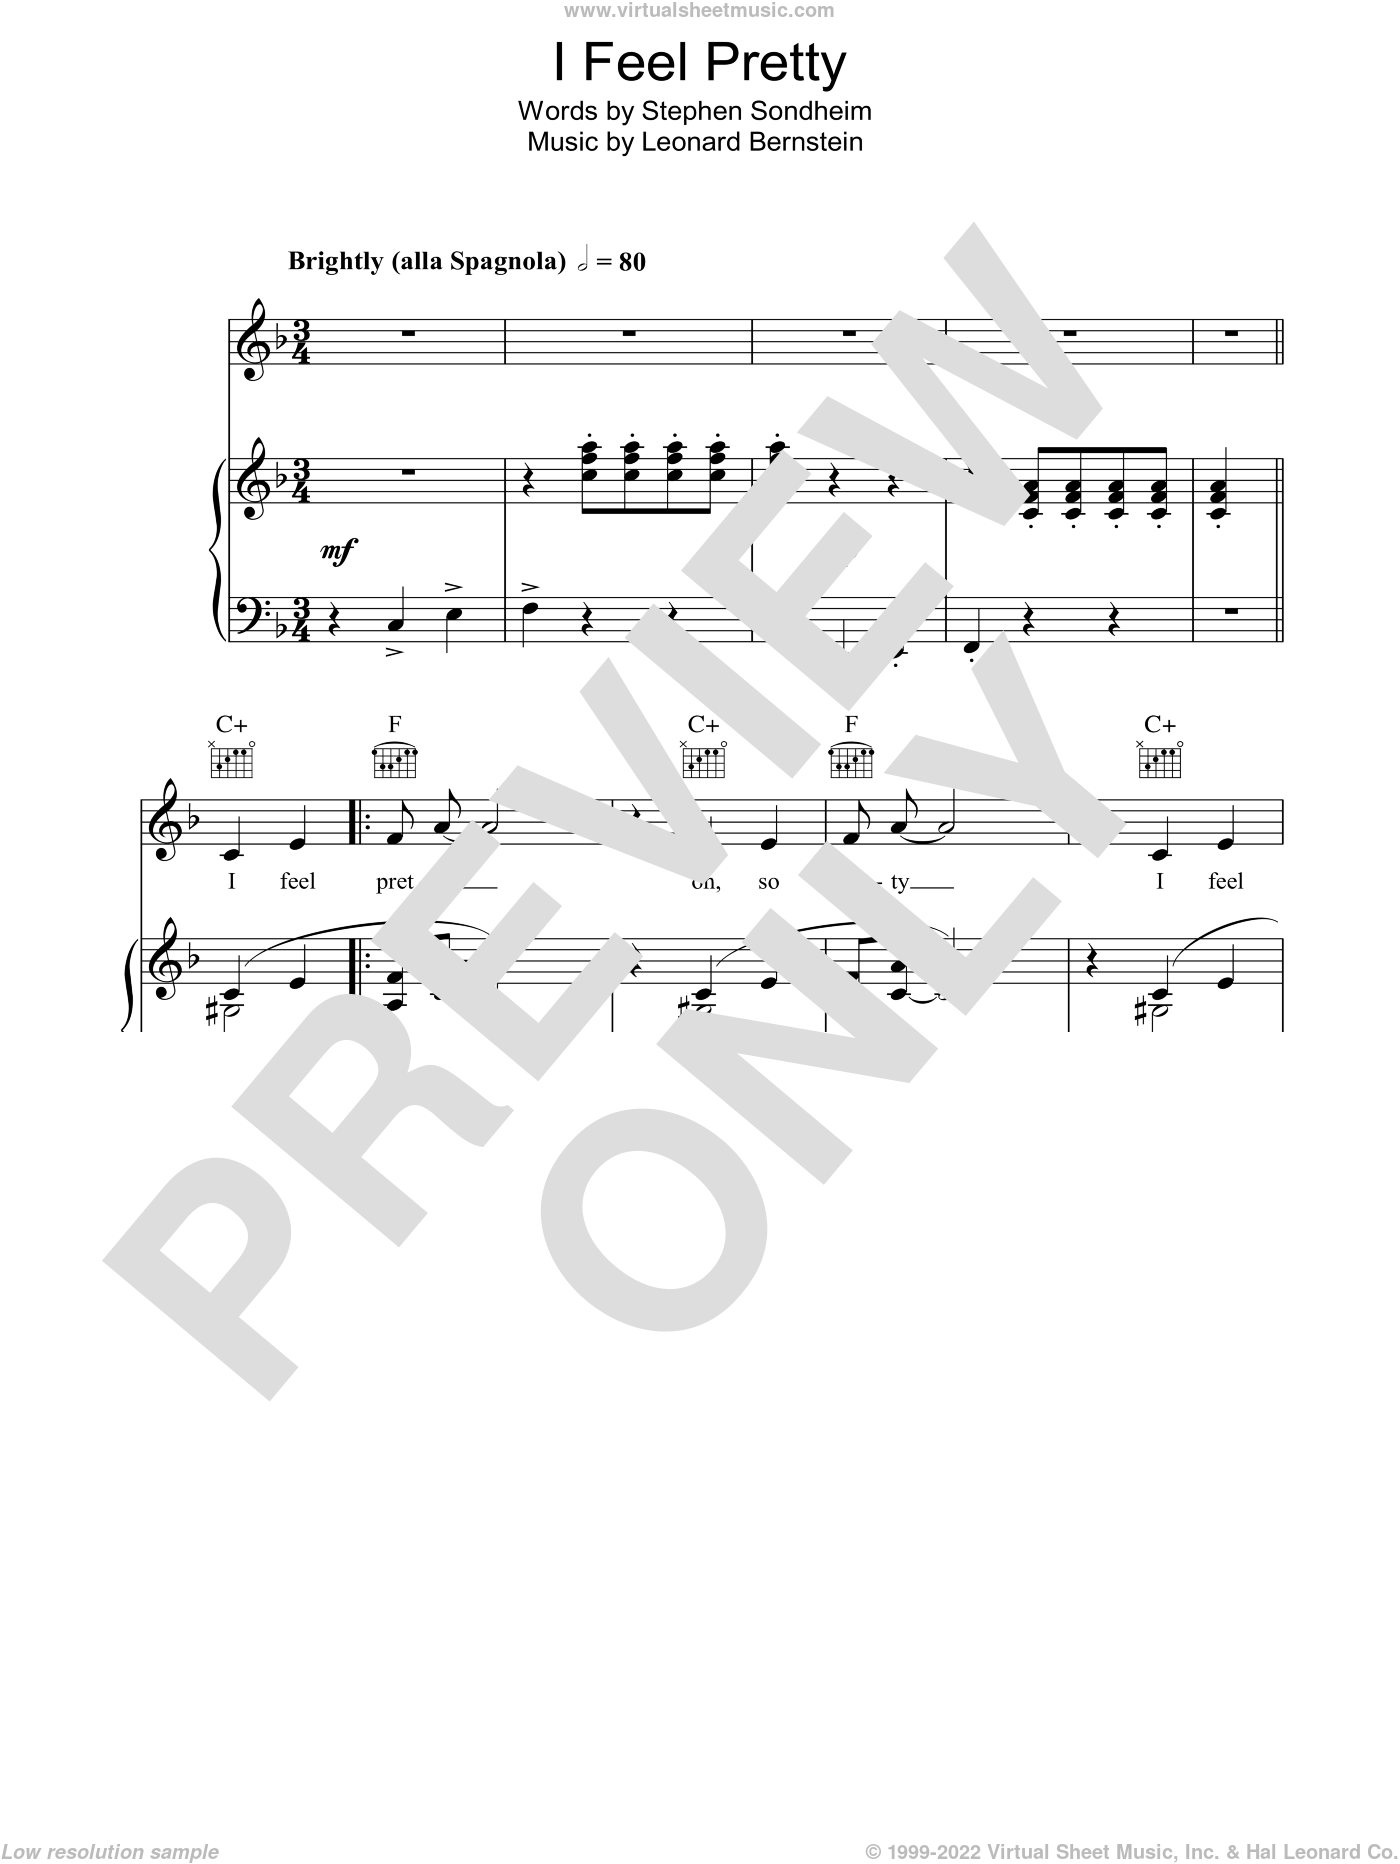 I Feel Pretty sheet music for voice, piano or guitar by Leonard Bernstein and Stephen Sondheim, intermediate skill level